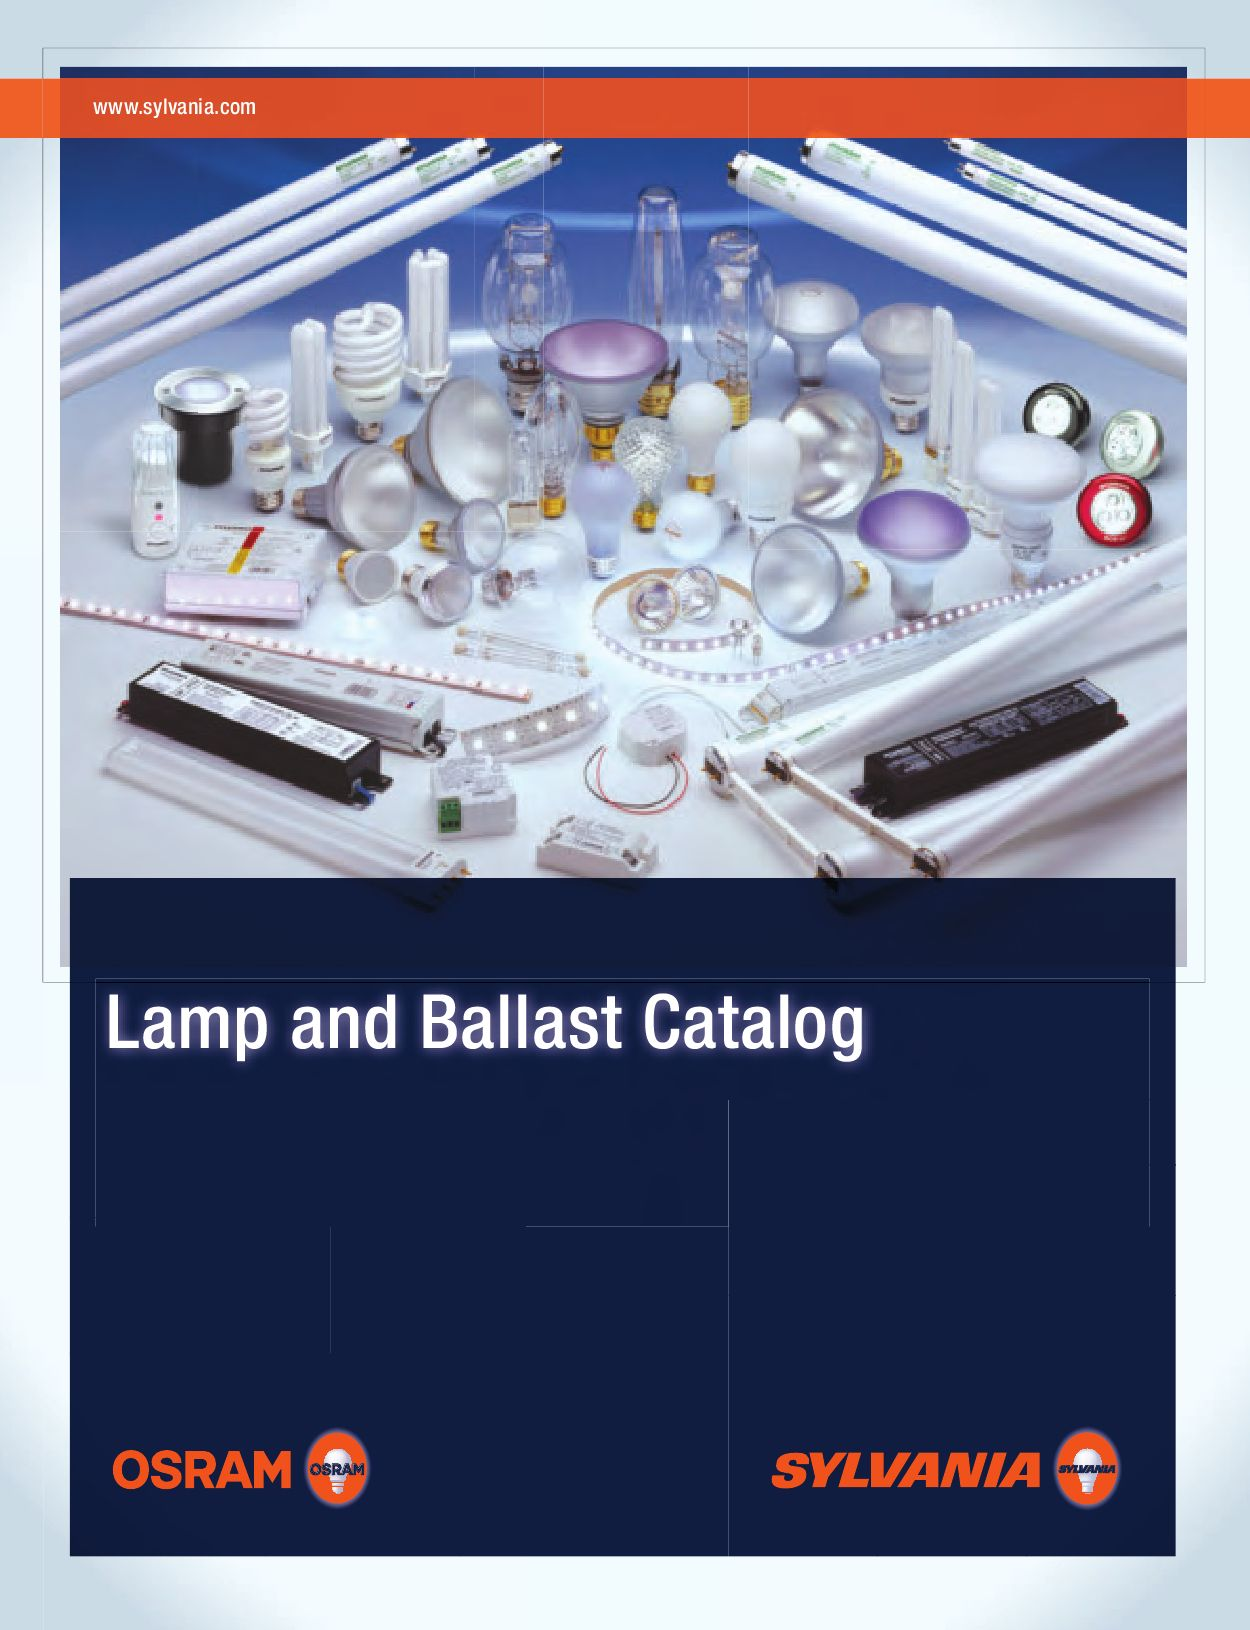 Gtl Sylvania Catalog Gte By Synscon Issuu Osram Ballast Wiring Diagram